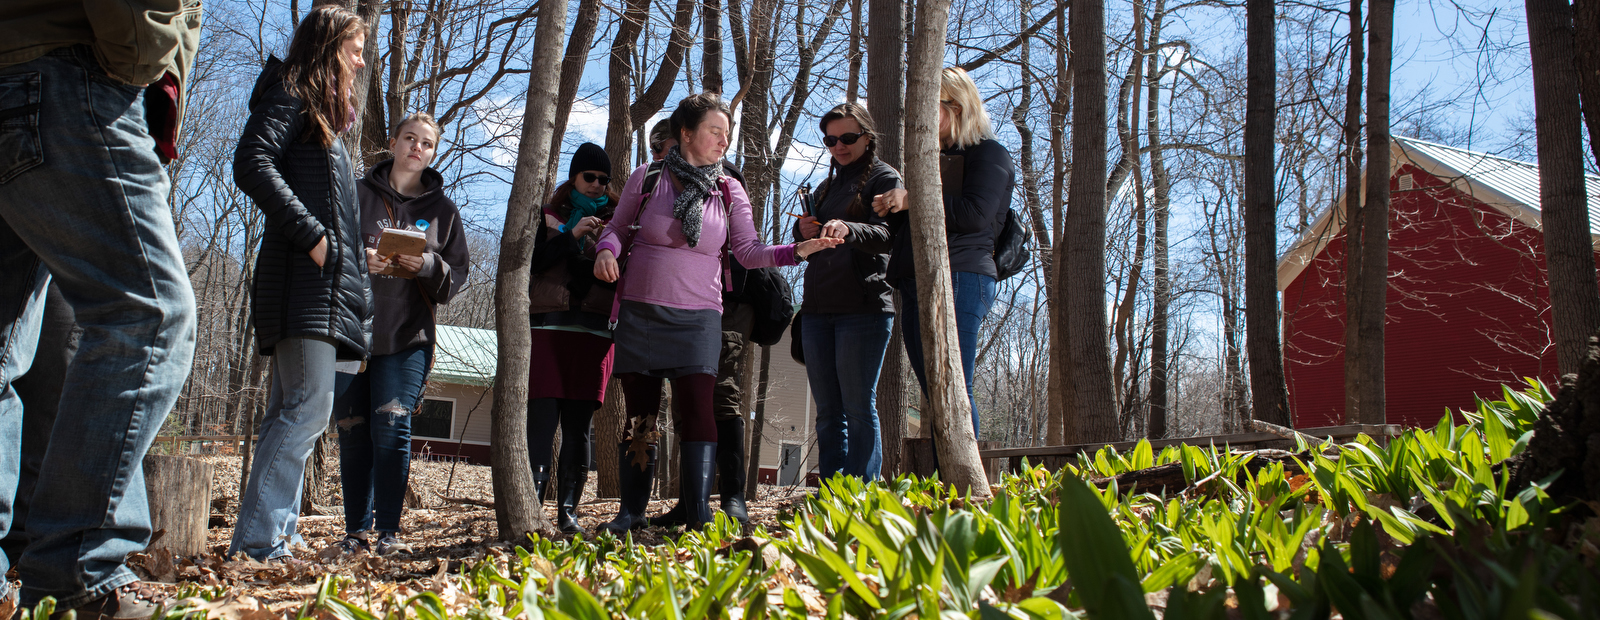 Blandford Nature Center welcomes spring with edible tours.  <span class='image-credits'>Adam Bird</span>